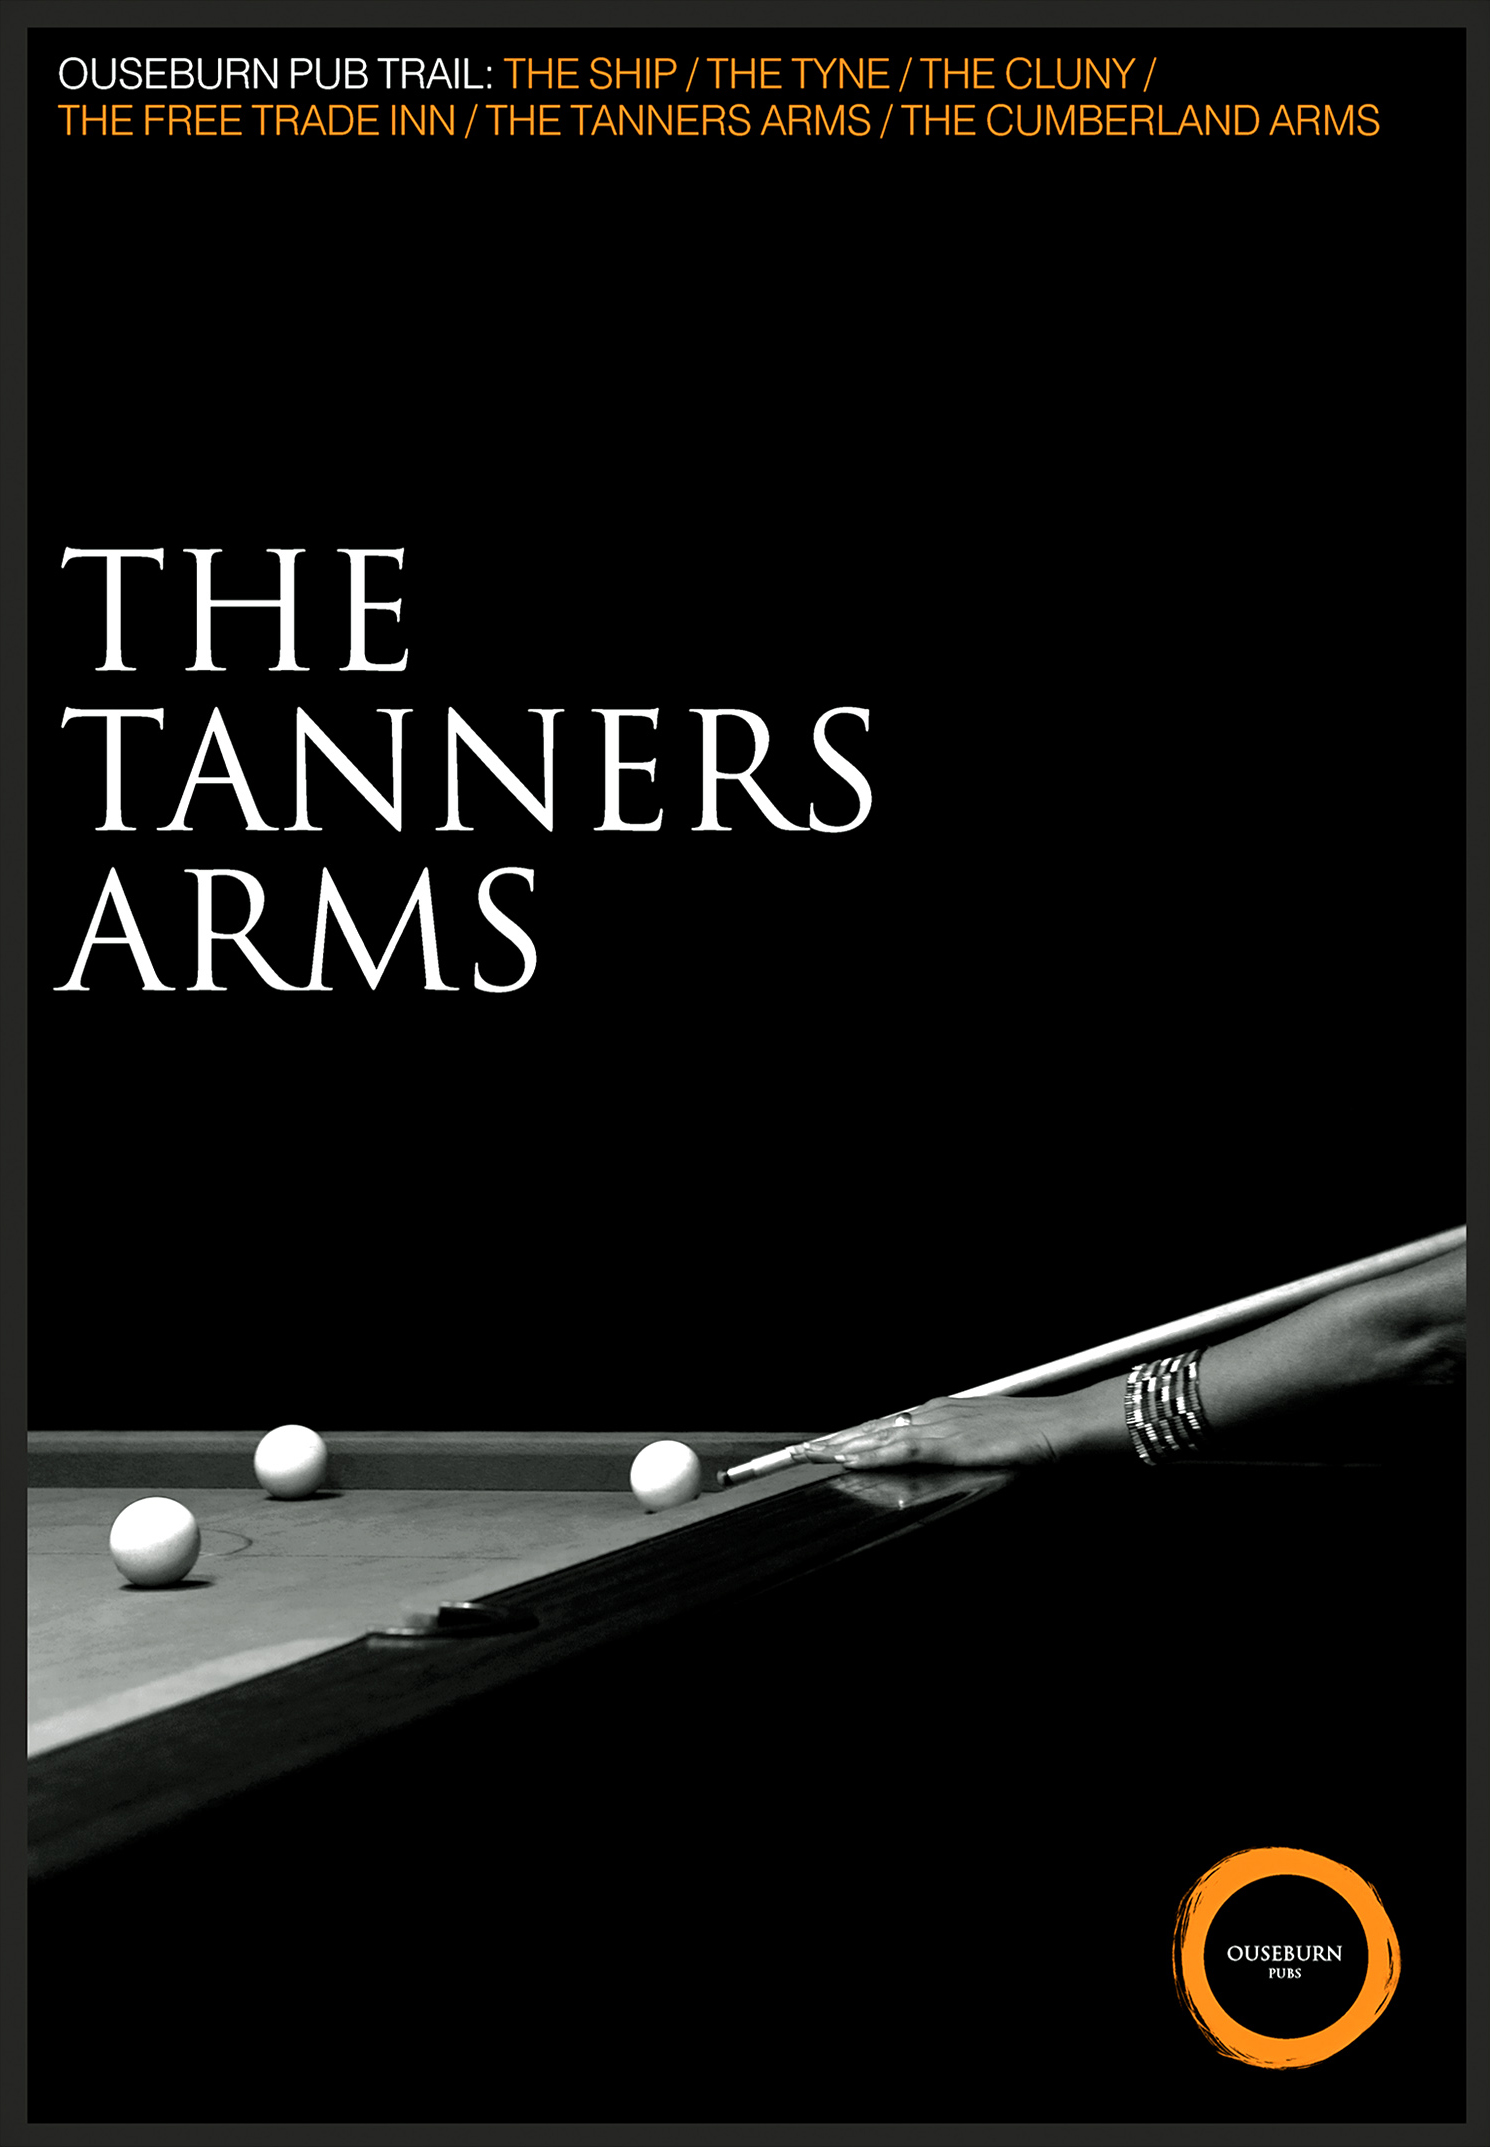 The Tanners Arms poster